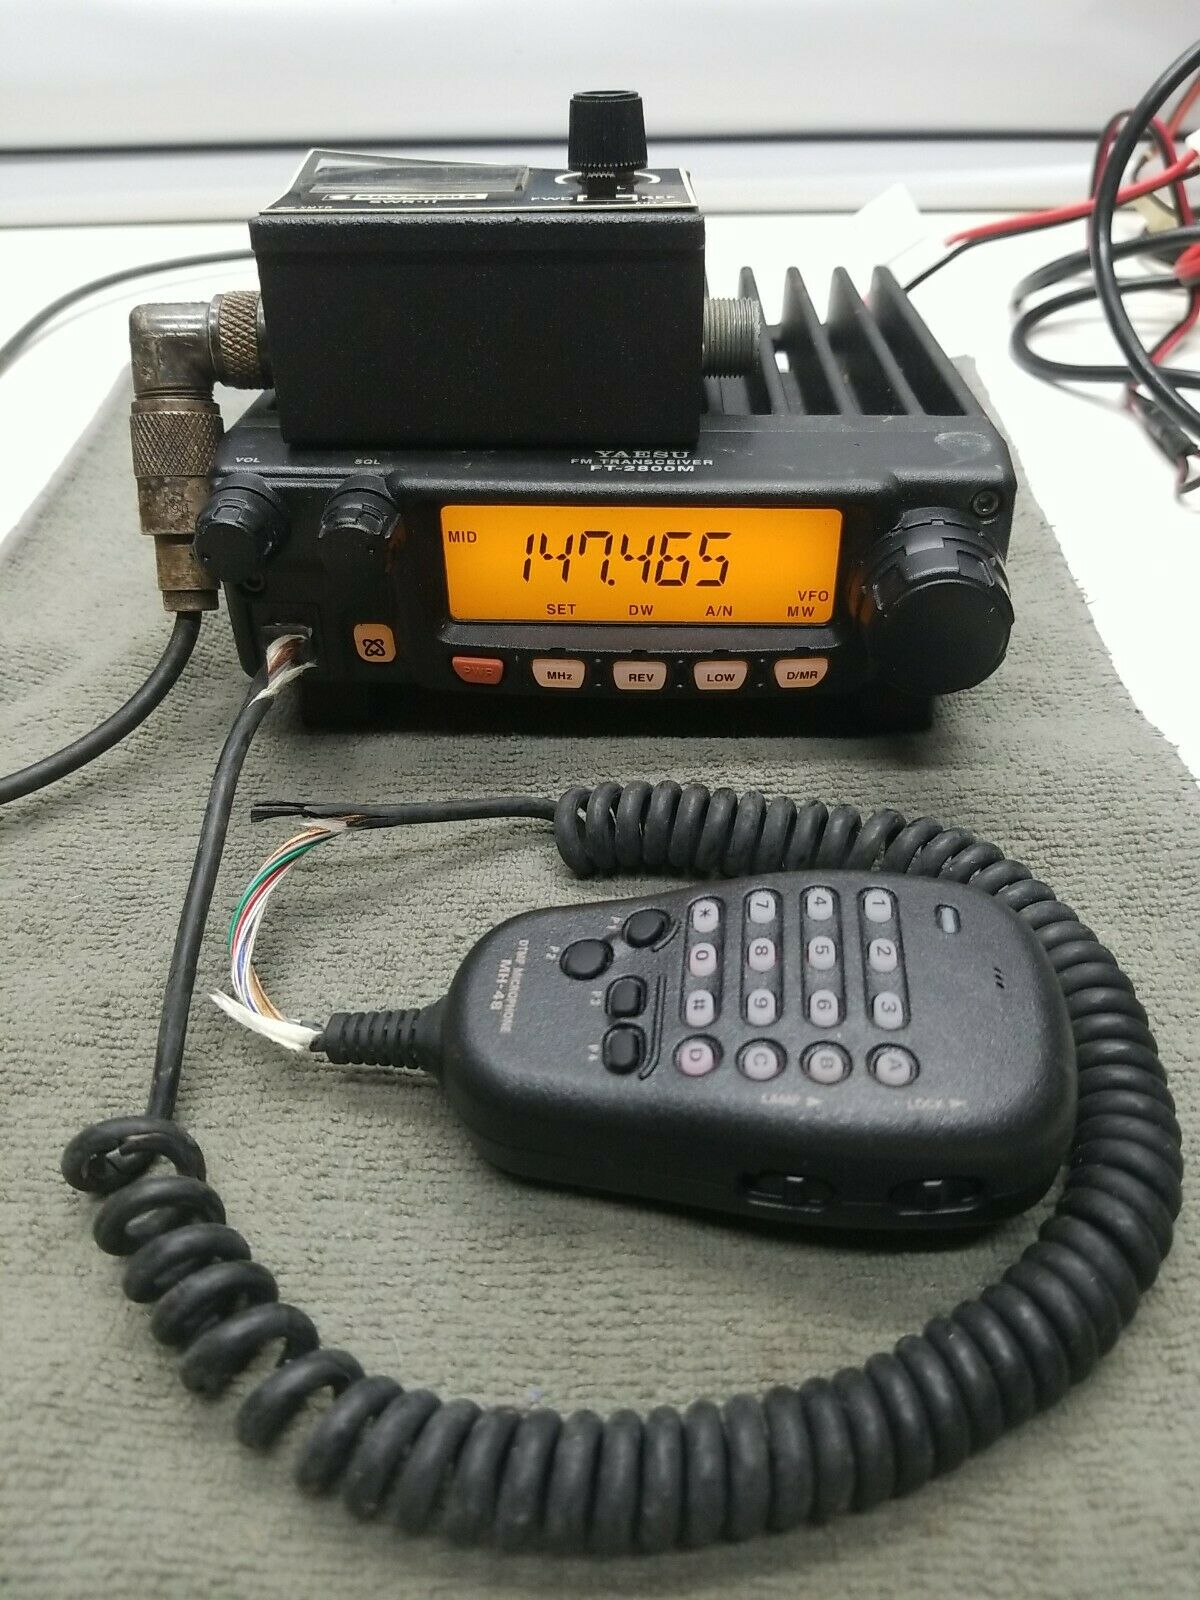 YAESU TRANSCEIVER FT2800M  . Available Now for 185.00